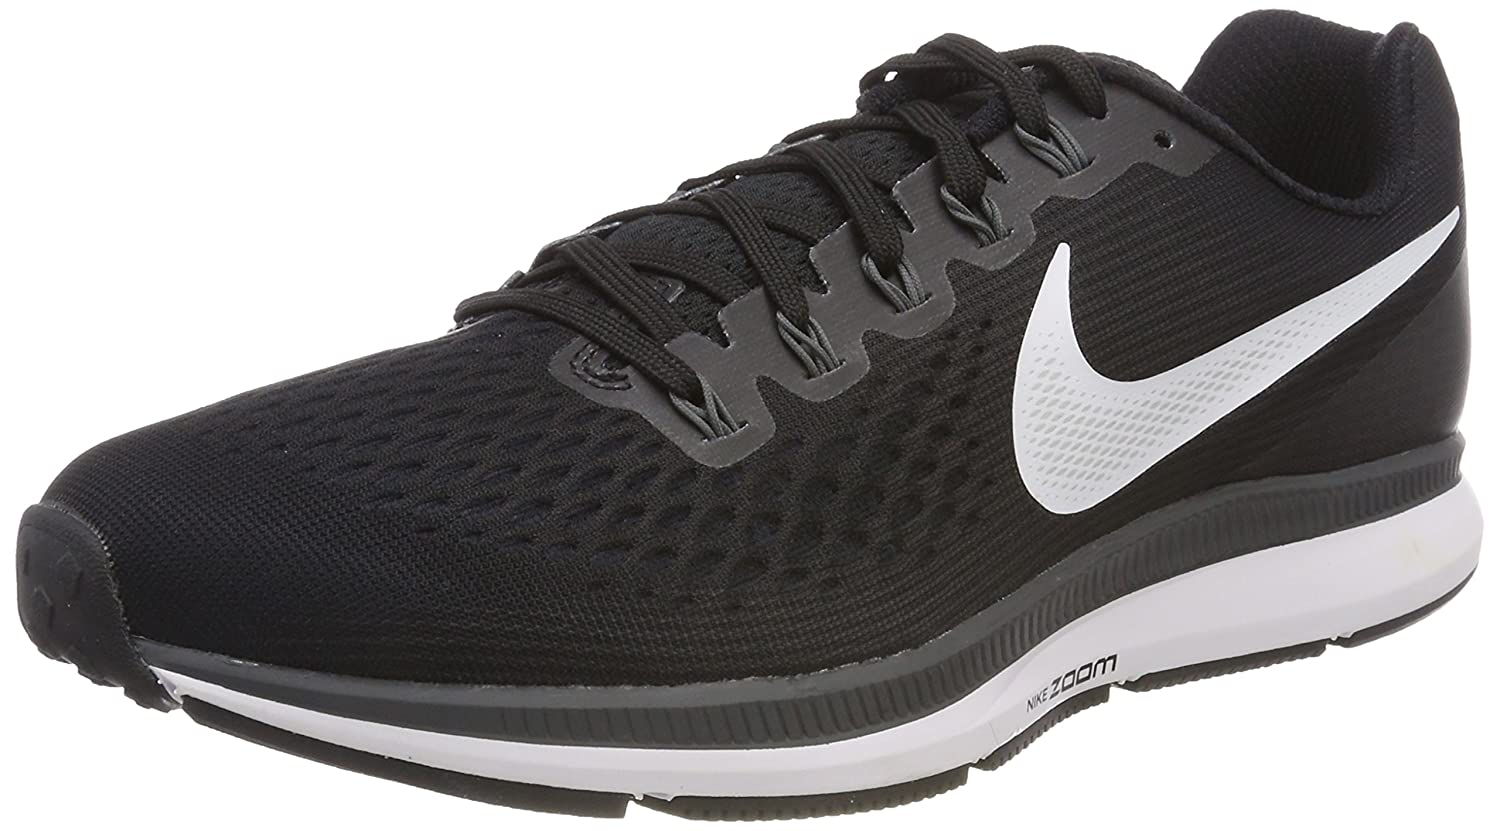 Nike Wmns Air Zoom Pegasus 34, Zapatillas de Trail Running para Mujer 35.5 EU|Negro (Black/White/Dark Grey/Anthracite 001)